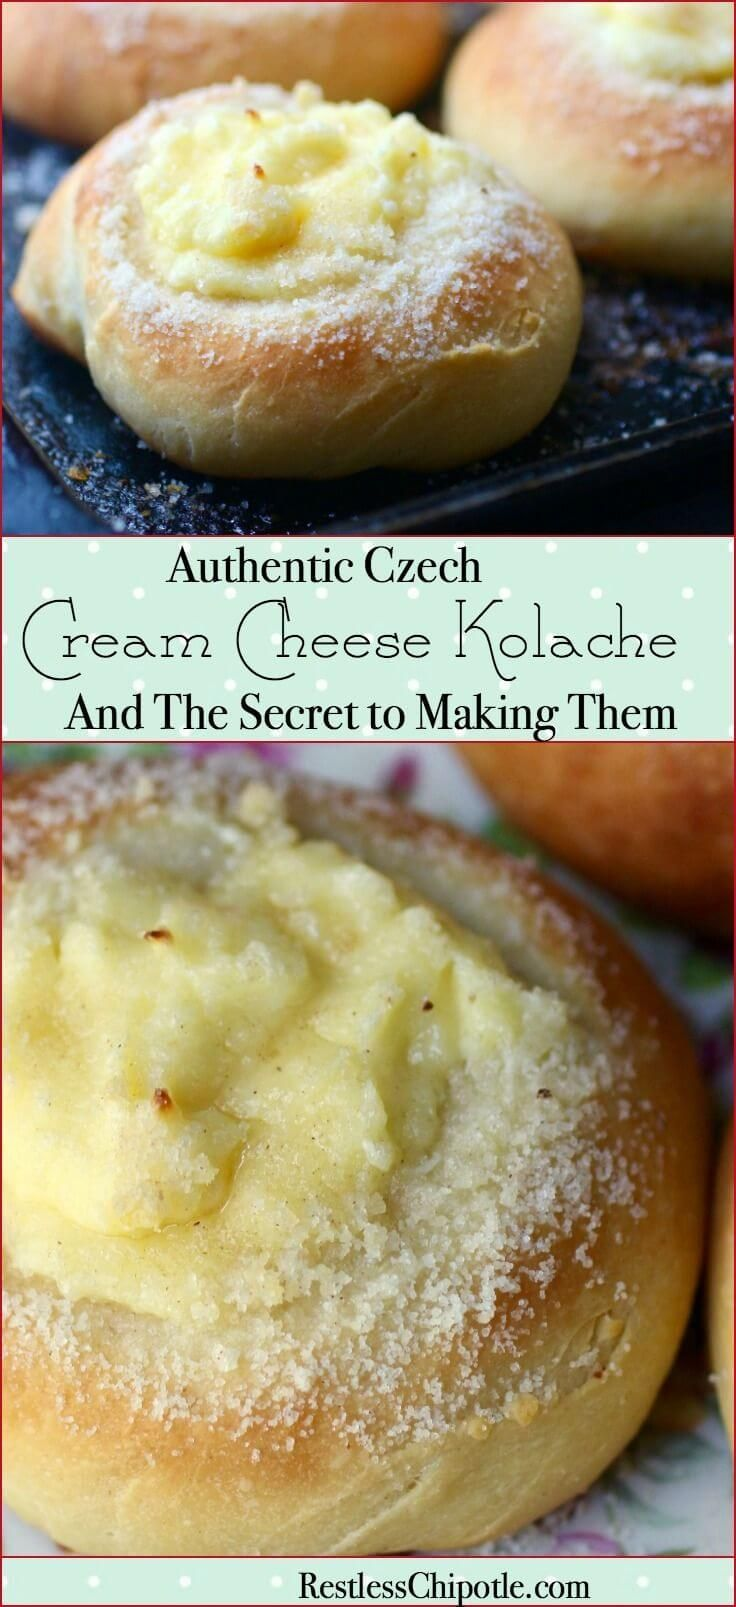 Easy & authentic! This cream cheese kolache recipe has the secret for perfect homemade kolaches every time. From RestlessChipotle.com via @Marye at Restless Chipotle